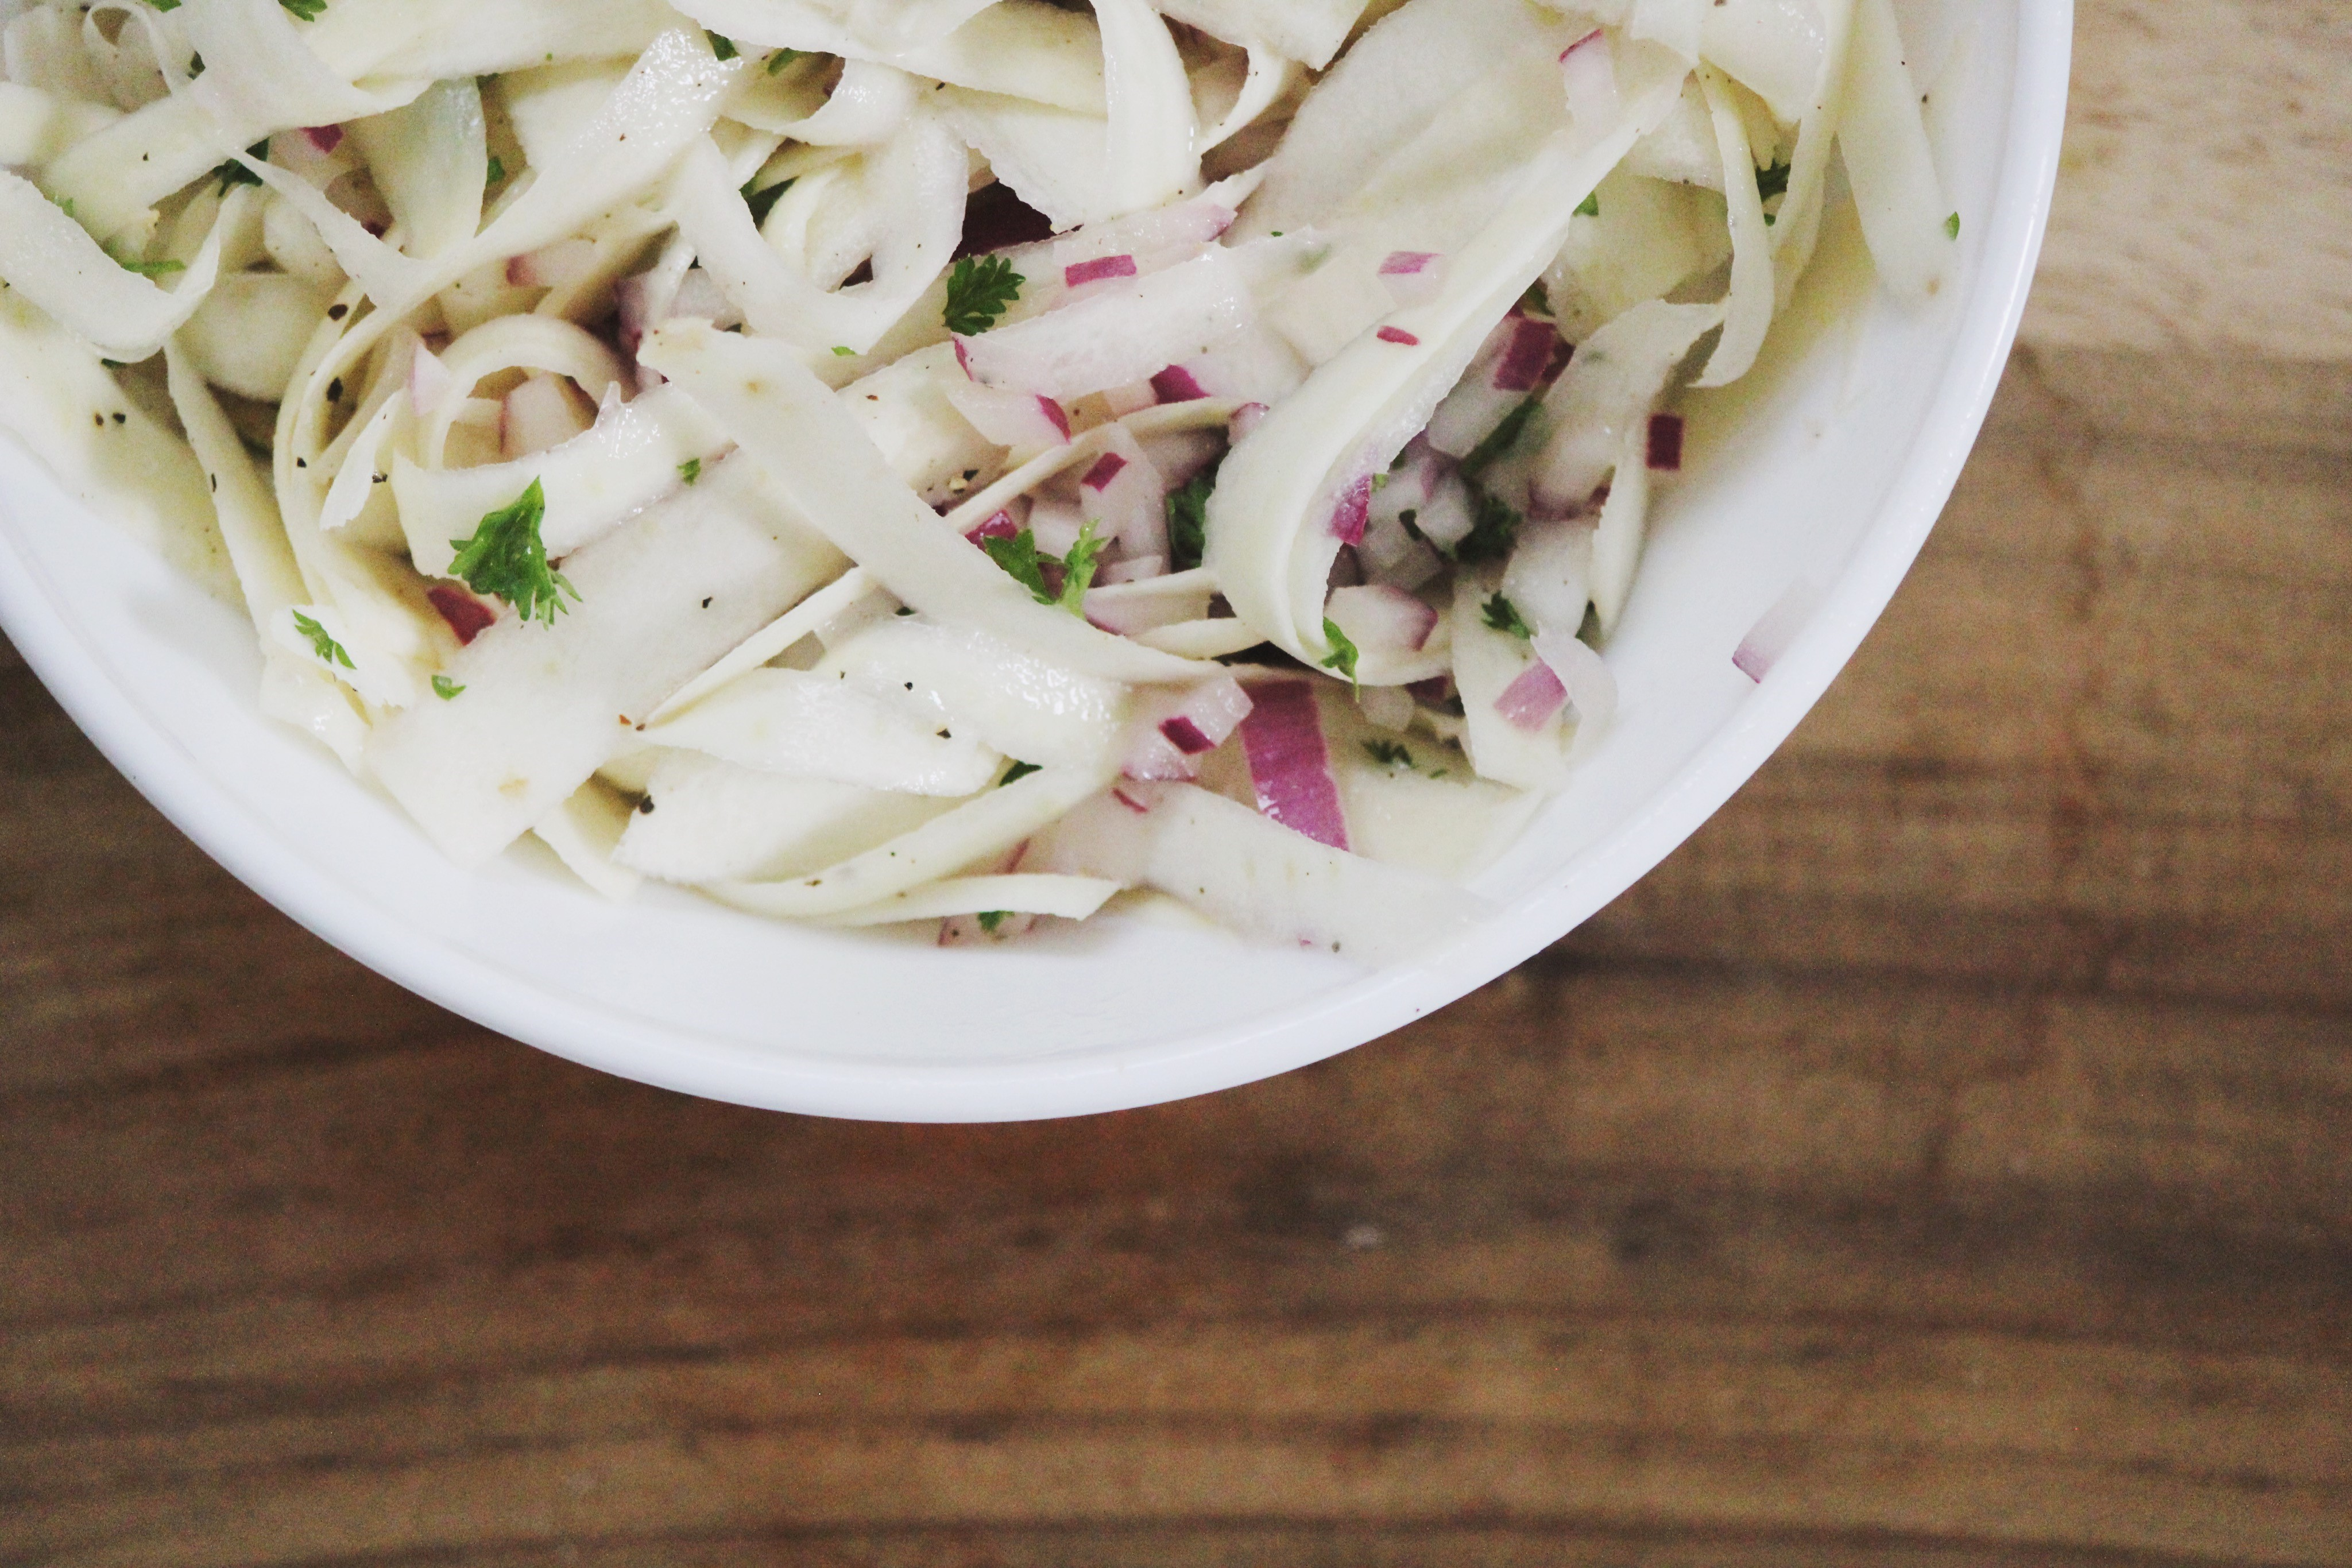 Mouth-Watering Parsnip Salad